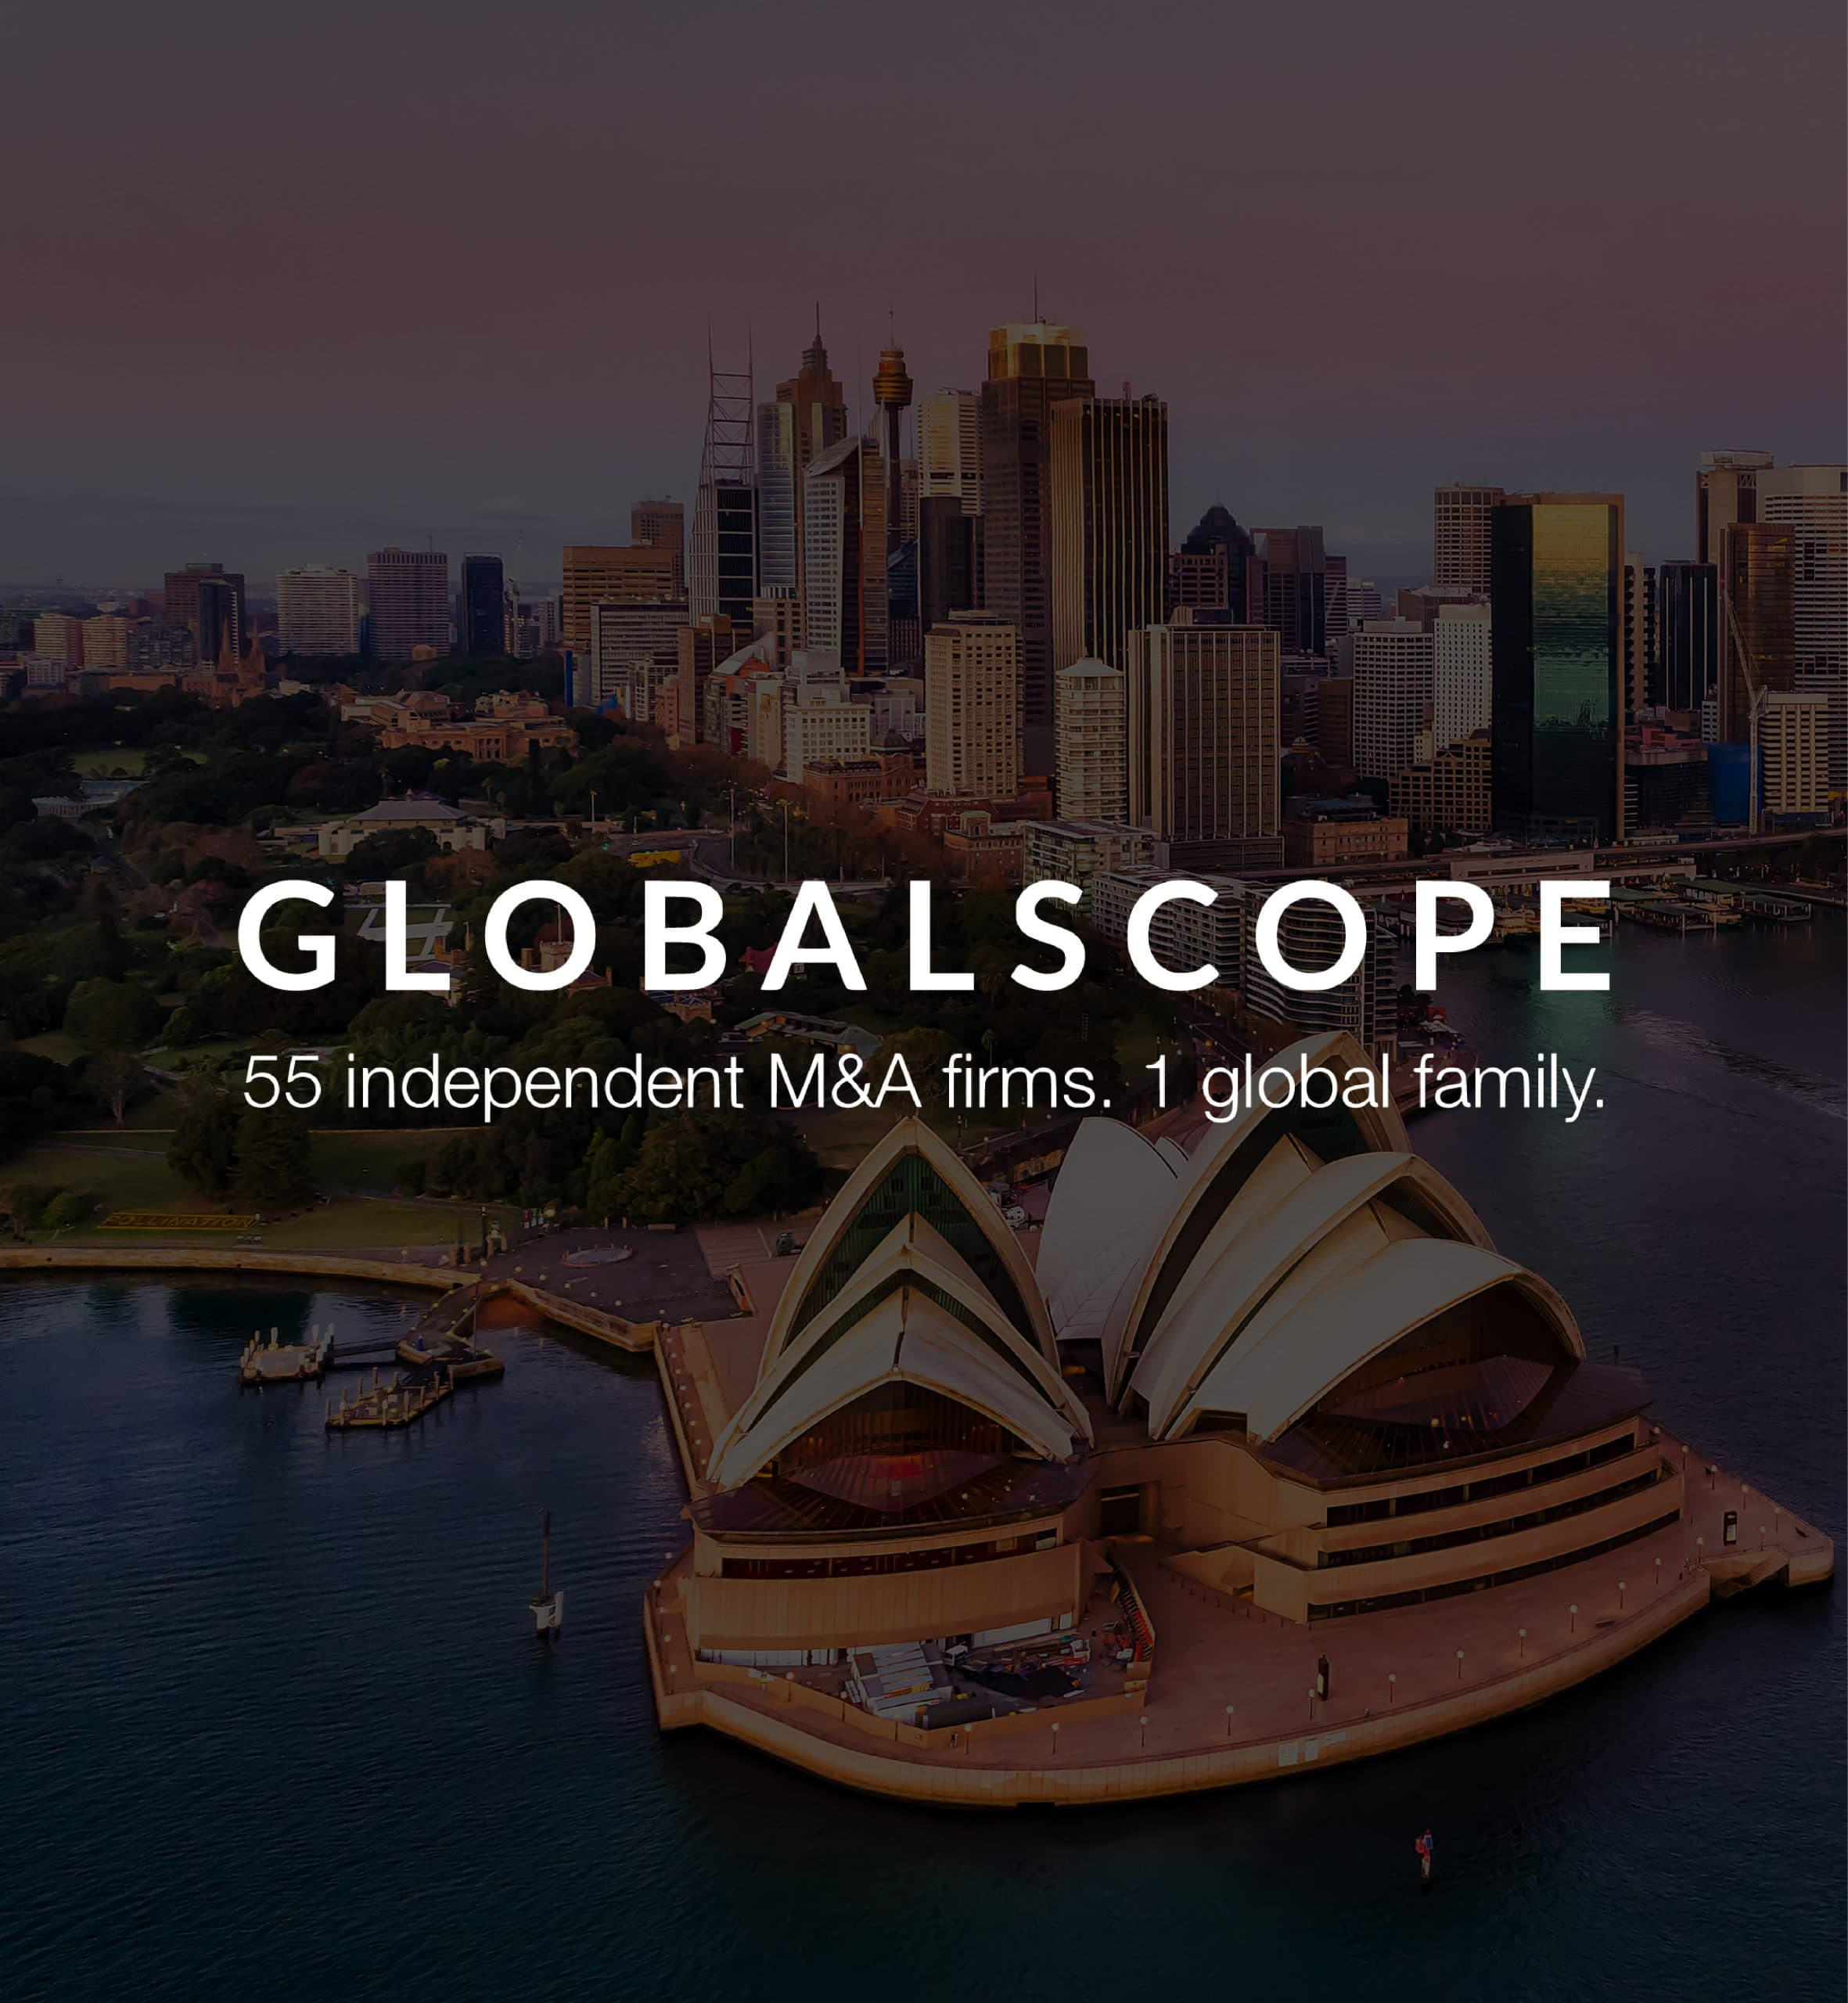 GLOBALSCOPE FALL CONFERENCE: DEX wins flagship deal award and announcement of 3 new tier-1 member firms joining the network